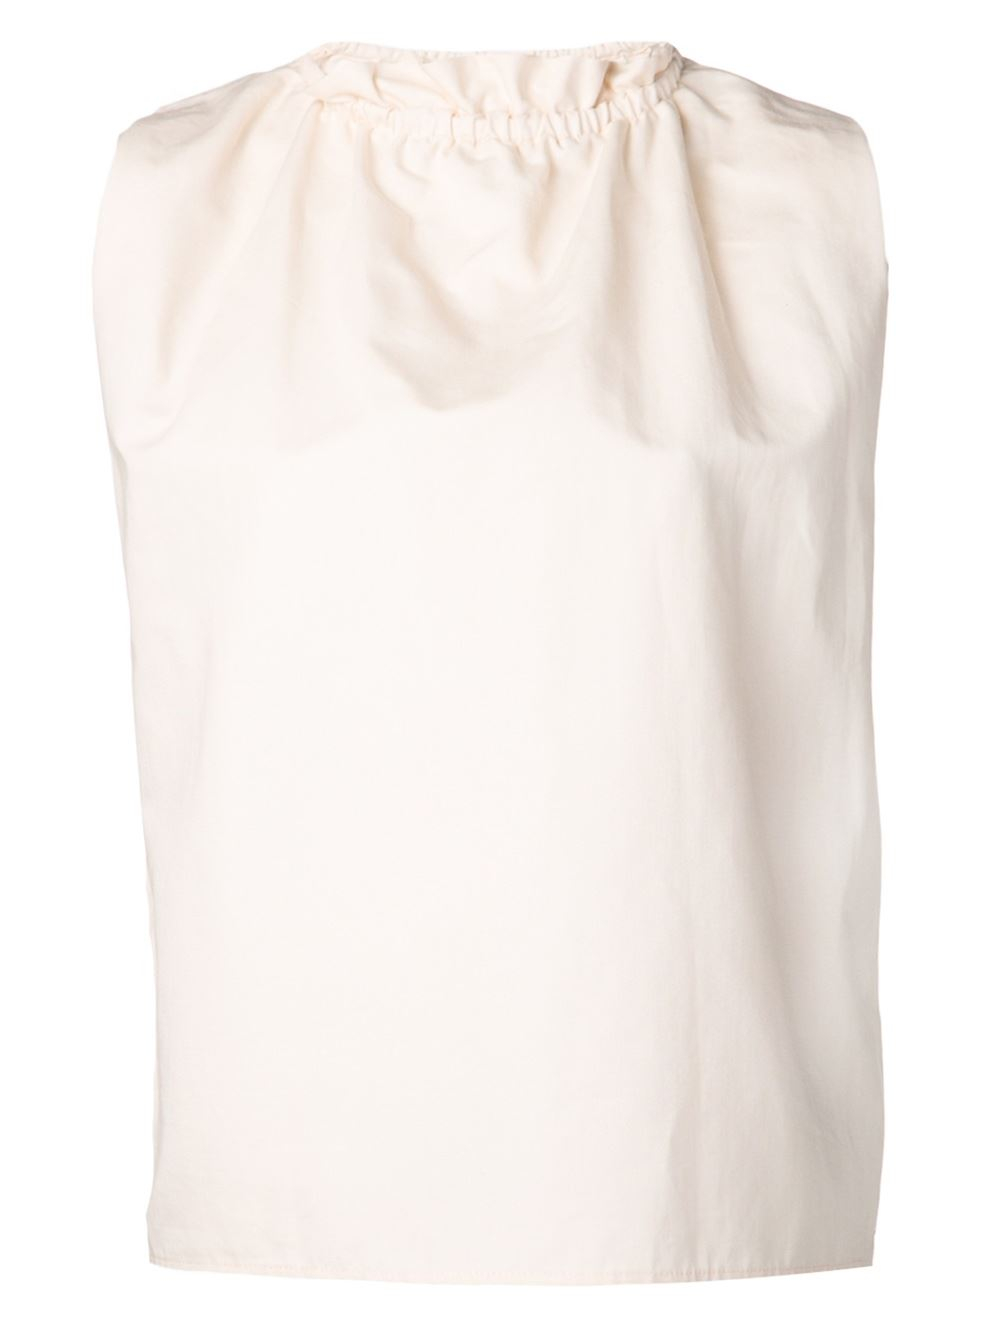 Womens Enfant Cotton Poplin Blouse Atlantique Ascoli Discount Fashionable Prices Online Sale Wide Range Of The Best Store To Get XWNiIY